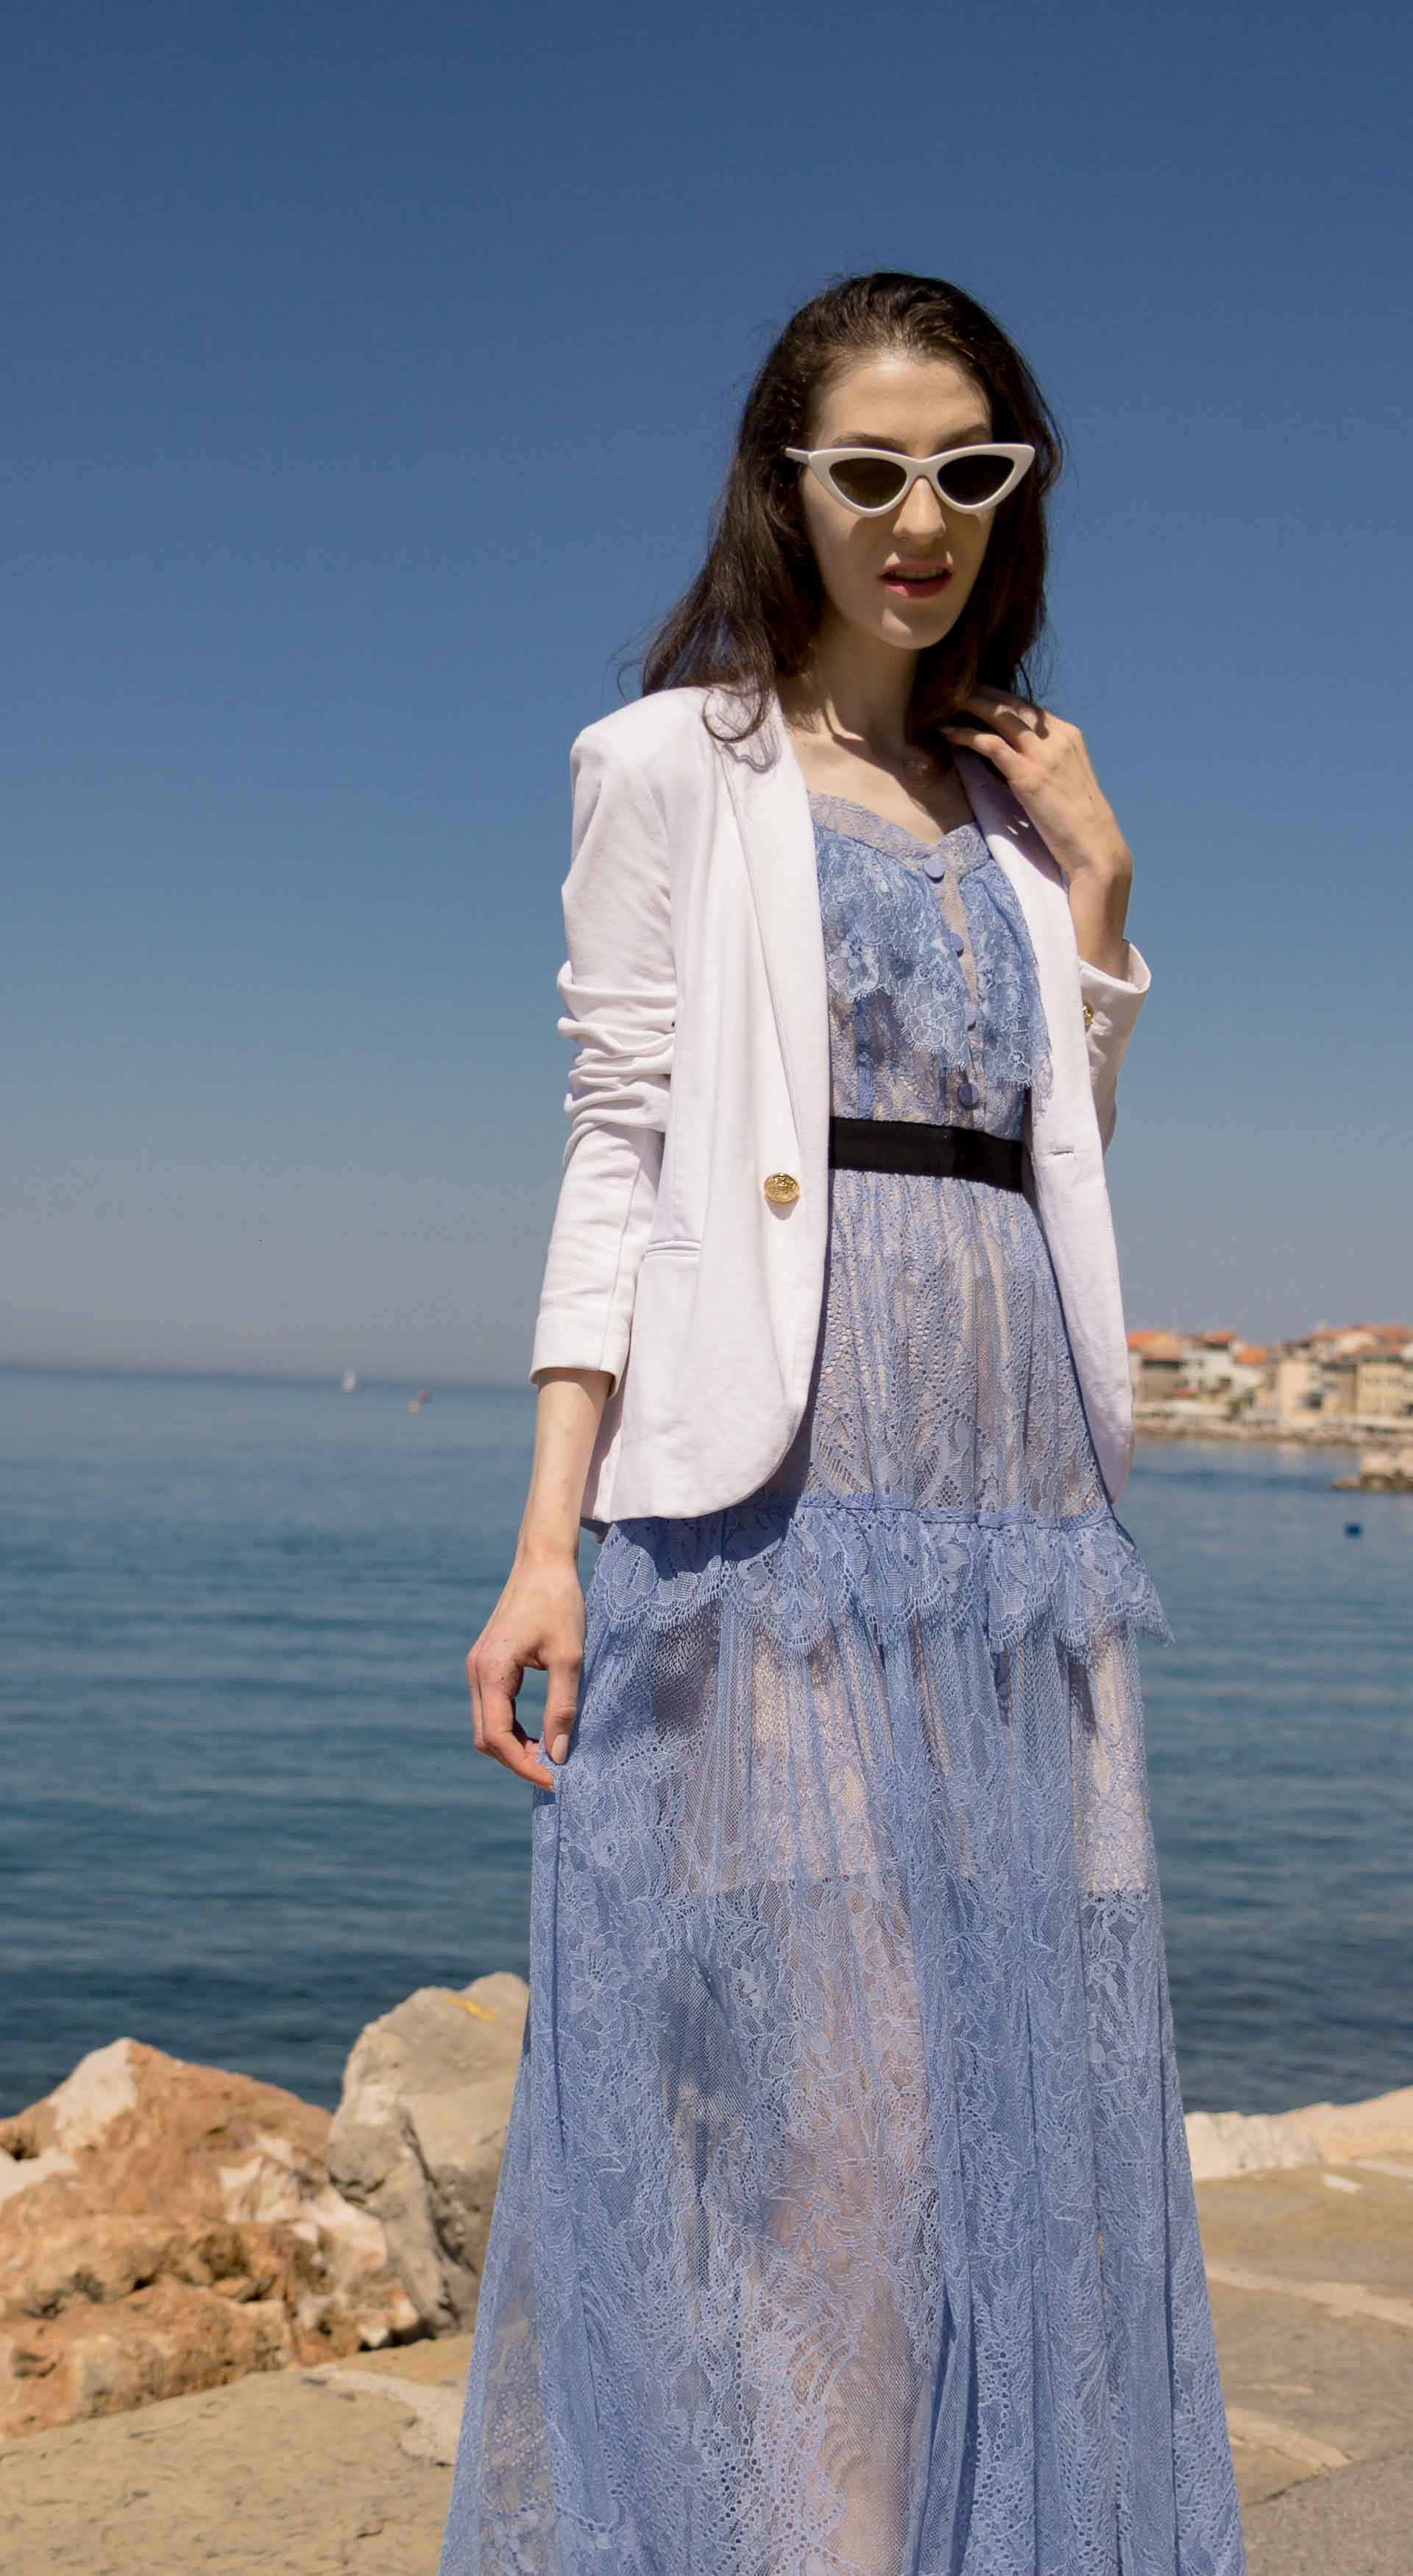 Veronika Lipar Fashion Blogger of Brunette from Wall Street wearing Self-Portrait blue lace midi dress, white single button blazer, white shoulder bag, Lespecs white cat eye sunglasses for a wedding by the sea